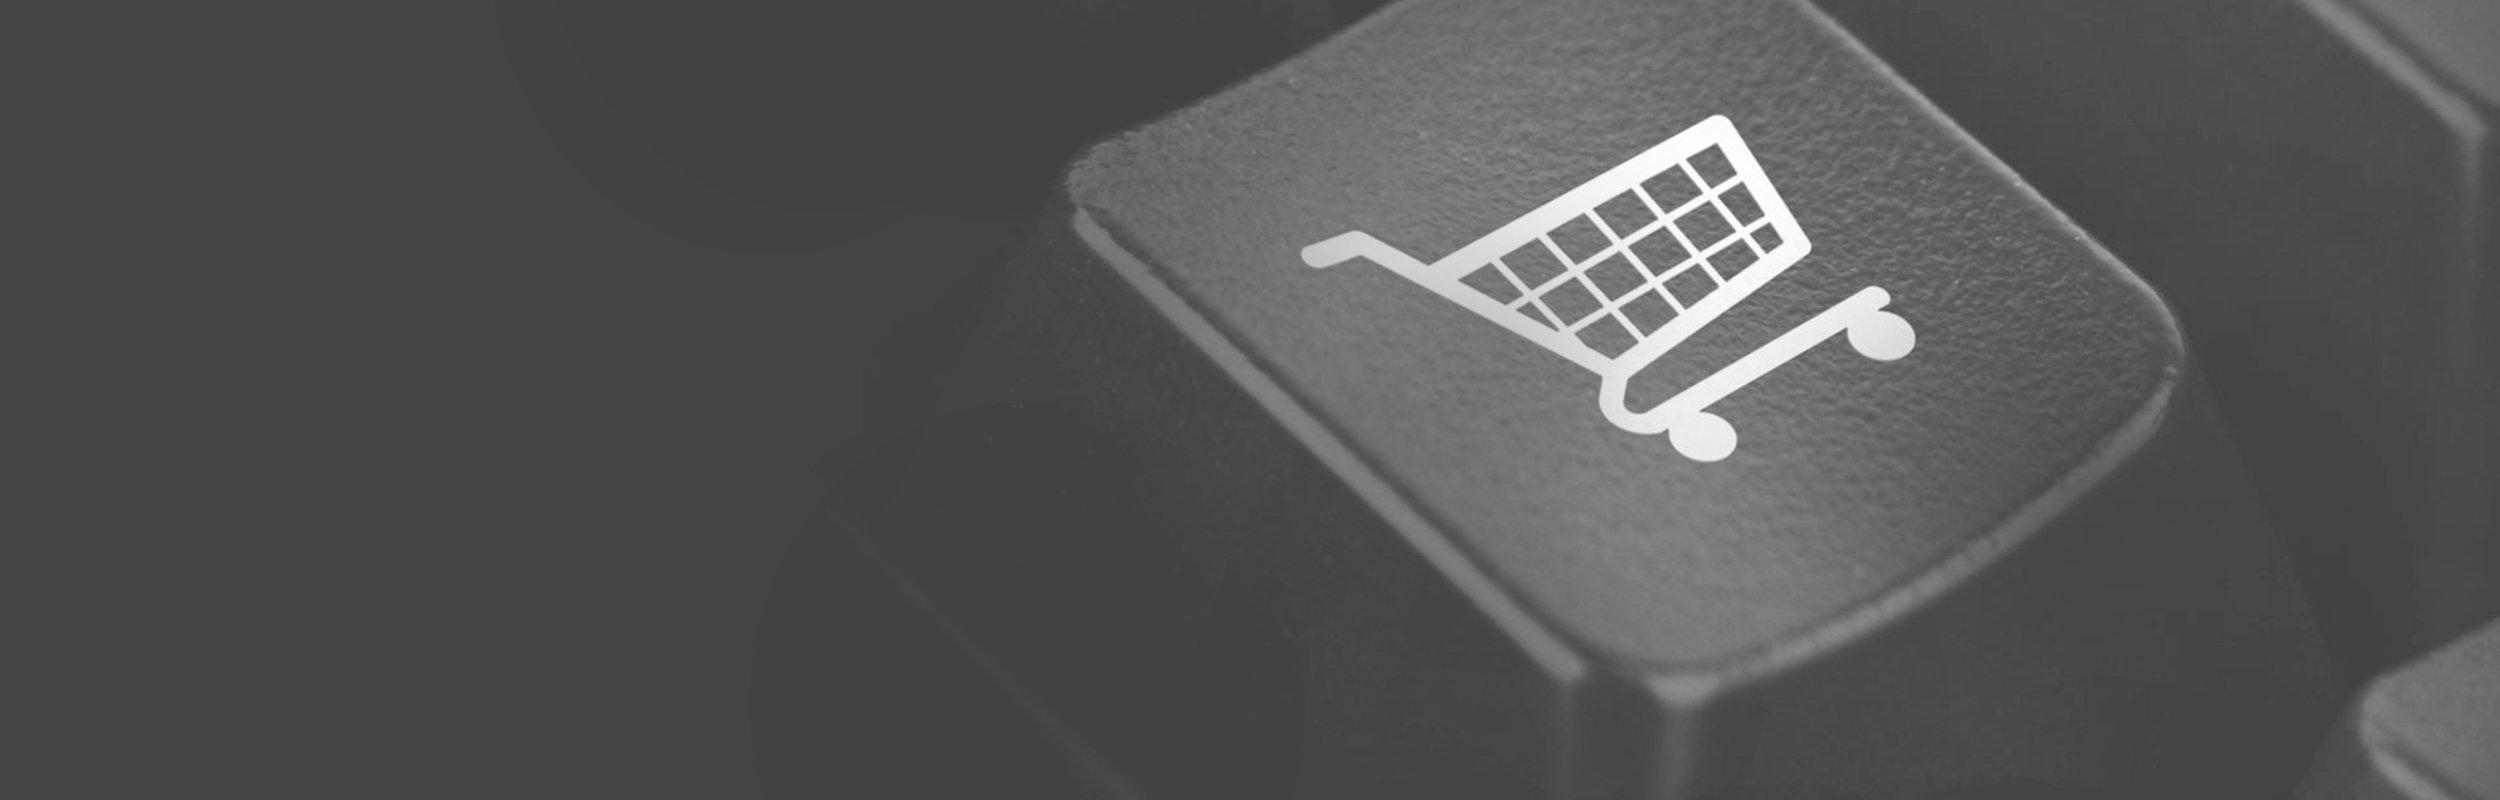 eCommerce powered by Drupal Commerce for online retailing